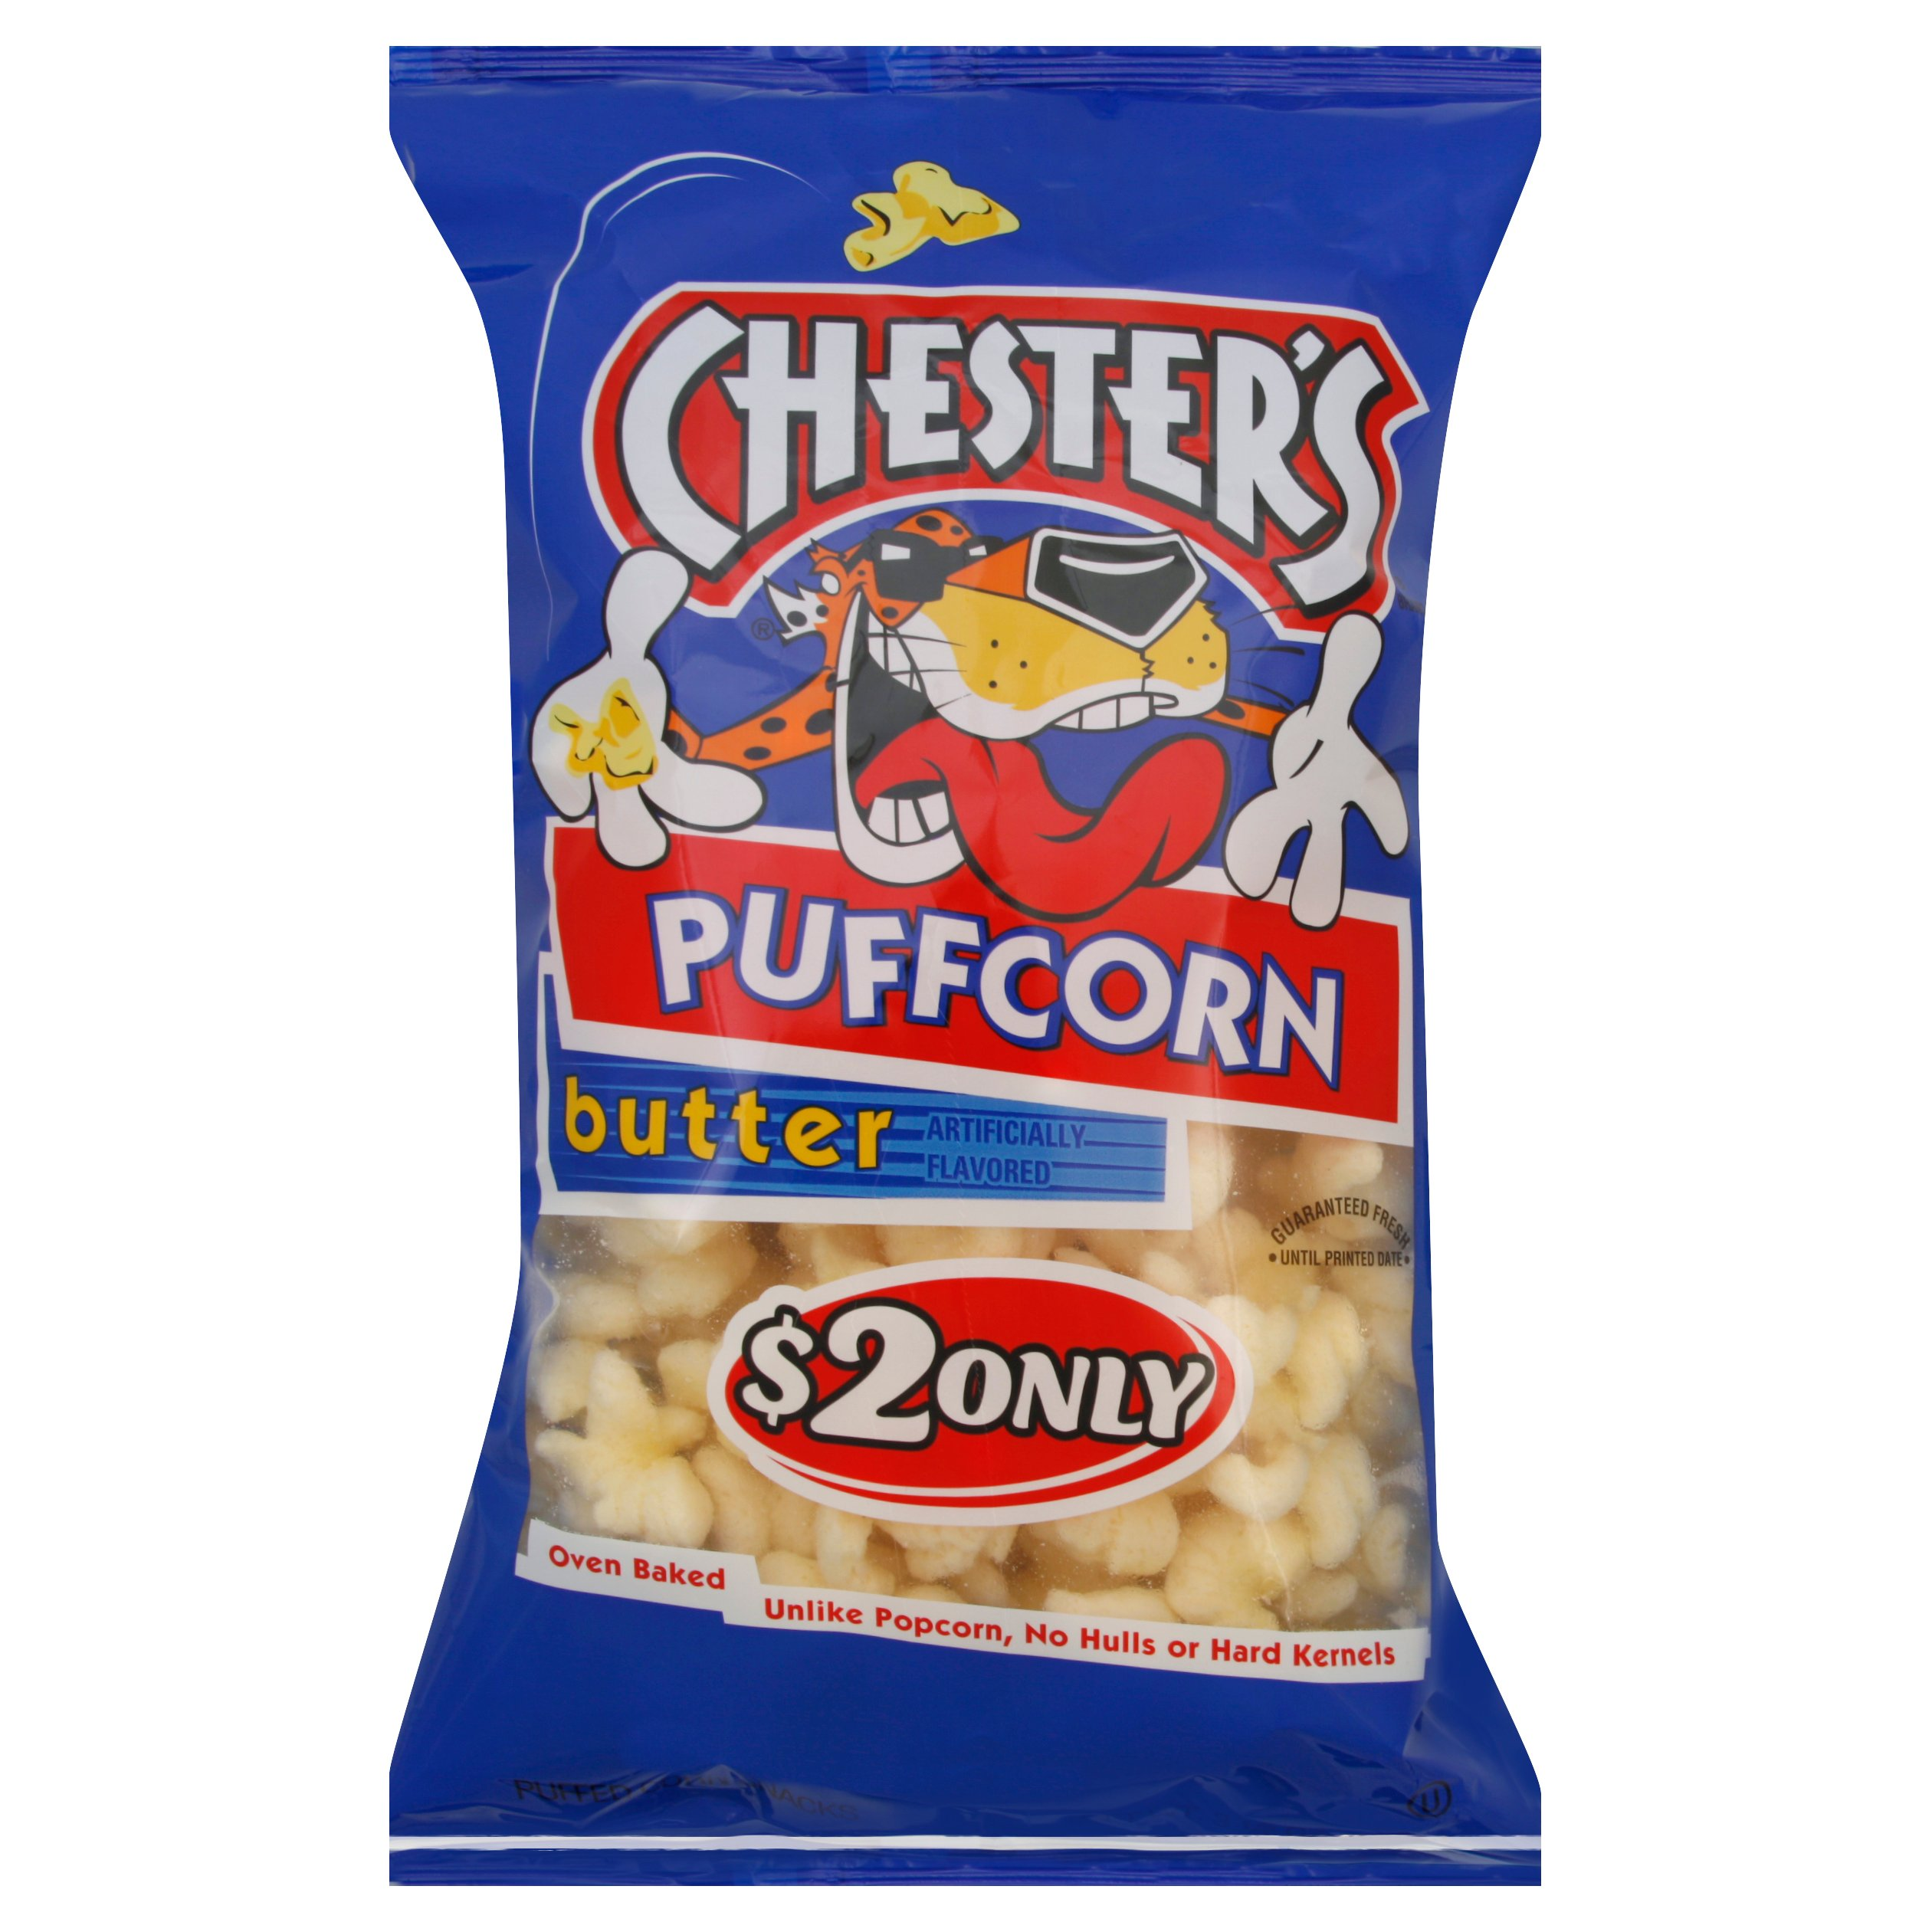 Chester S Butter Puffcorn Shop Chips At H E B